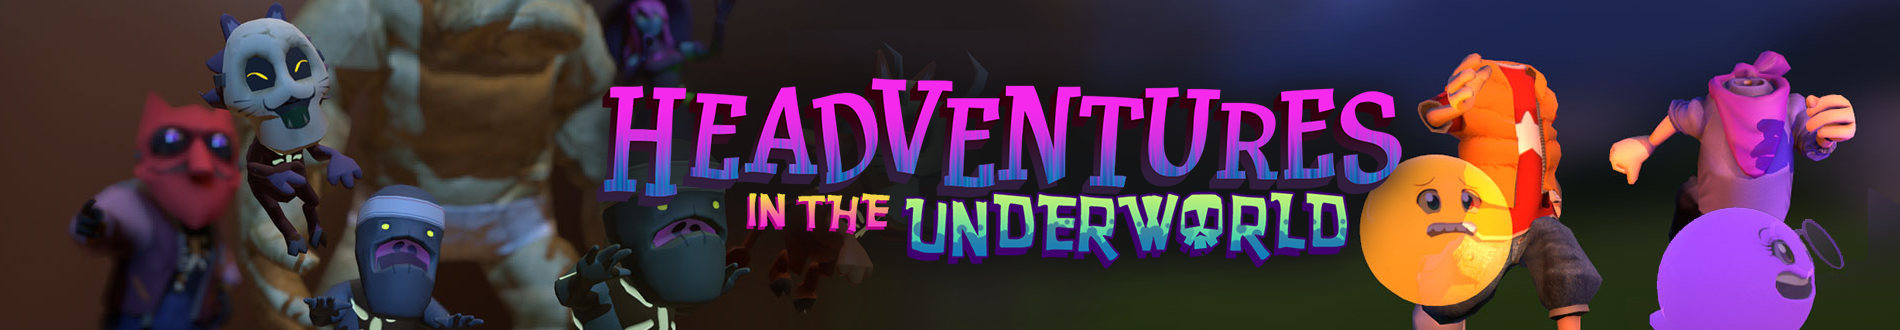 Headventures in the Underworld